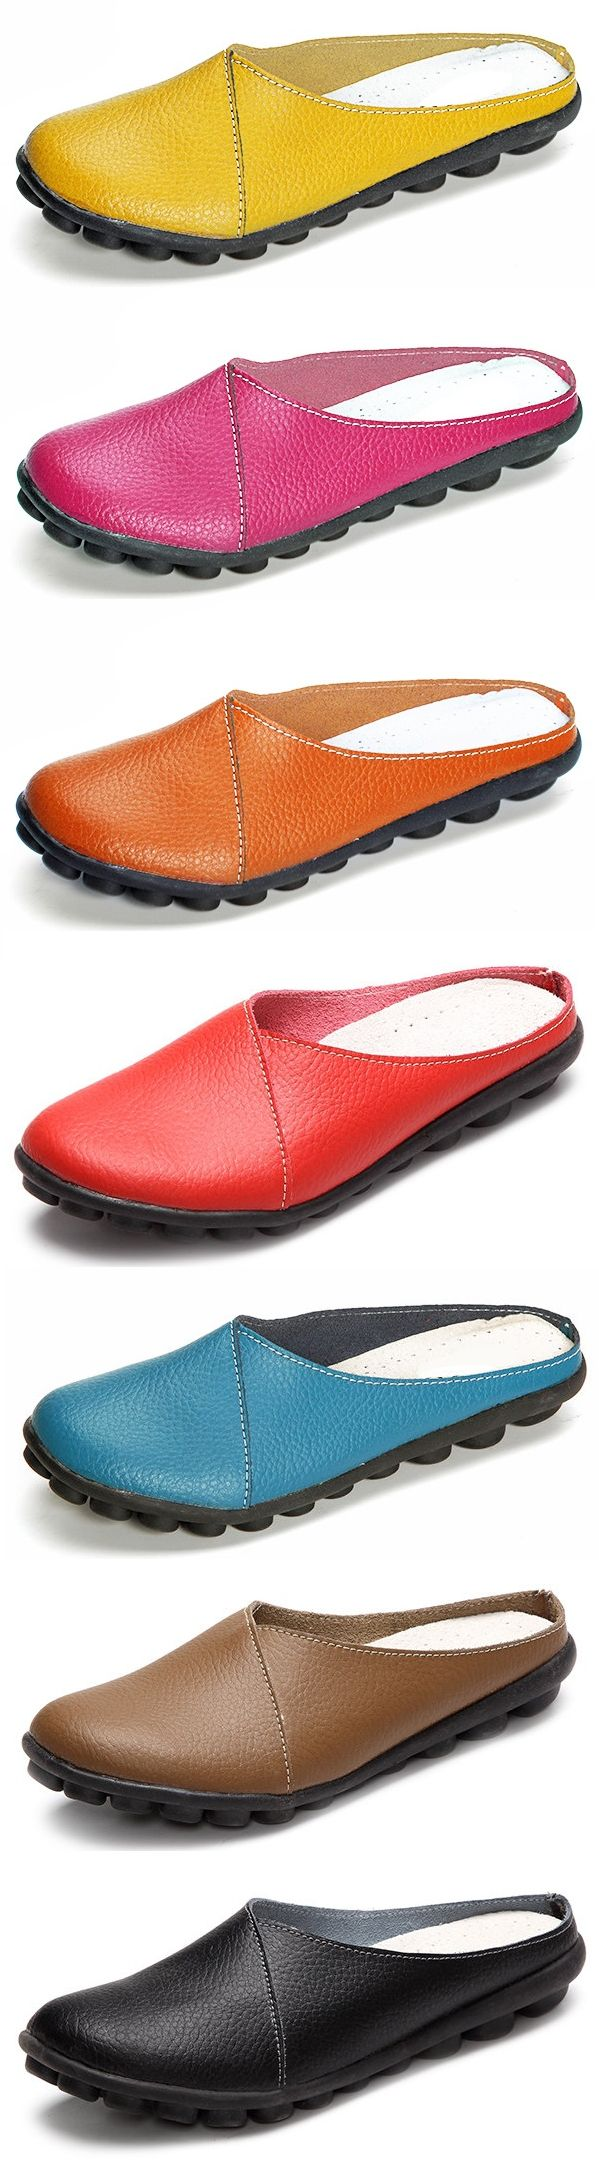 SOCOFY Big Size Pure Color Soft Sole Casual Open Heel Lazy Flat Shoes. To wear during massage